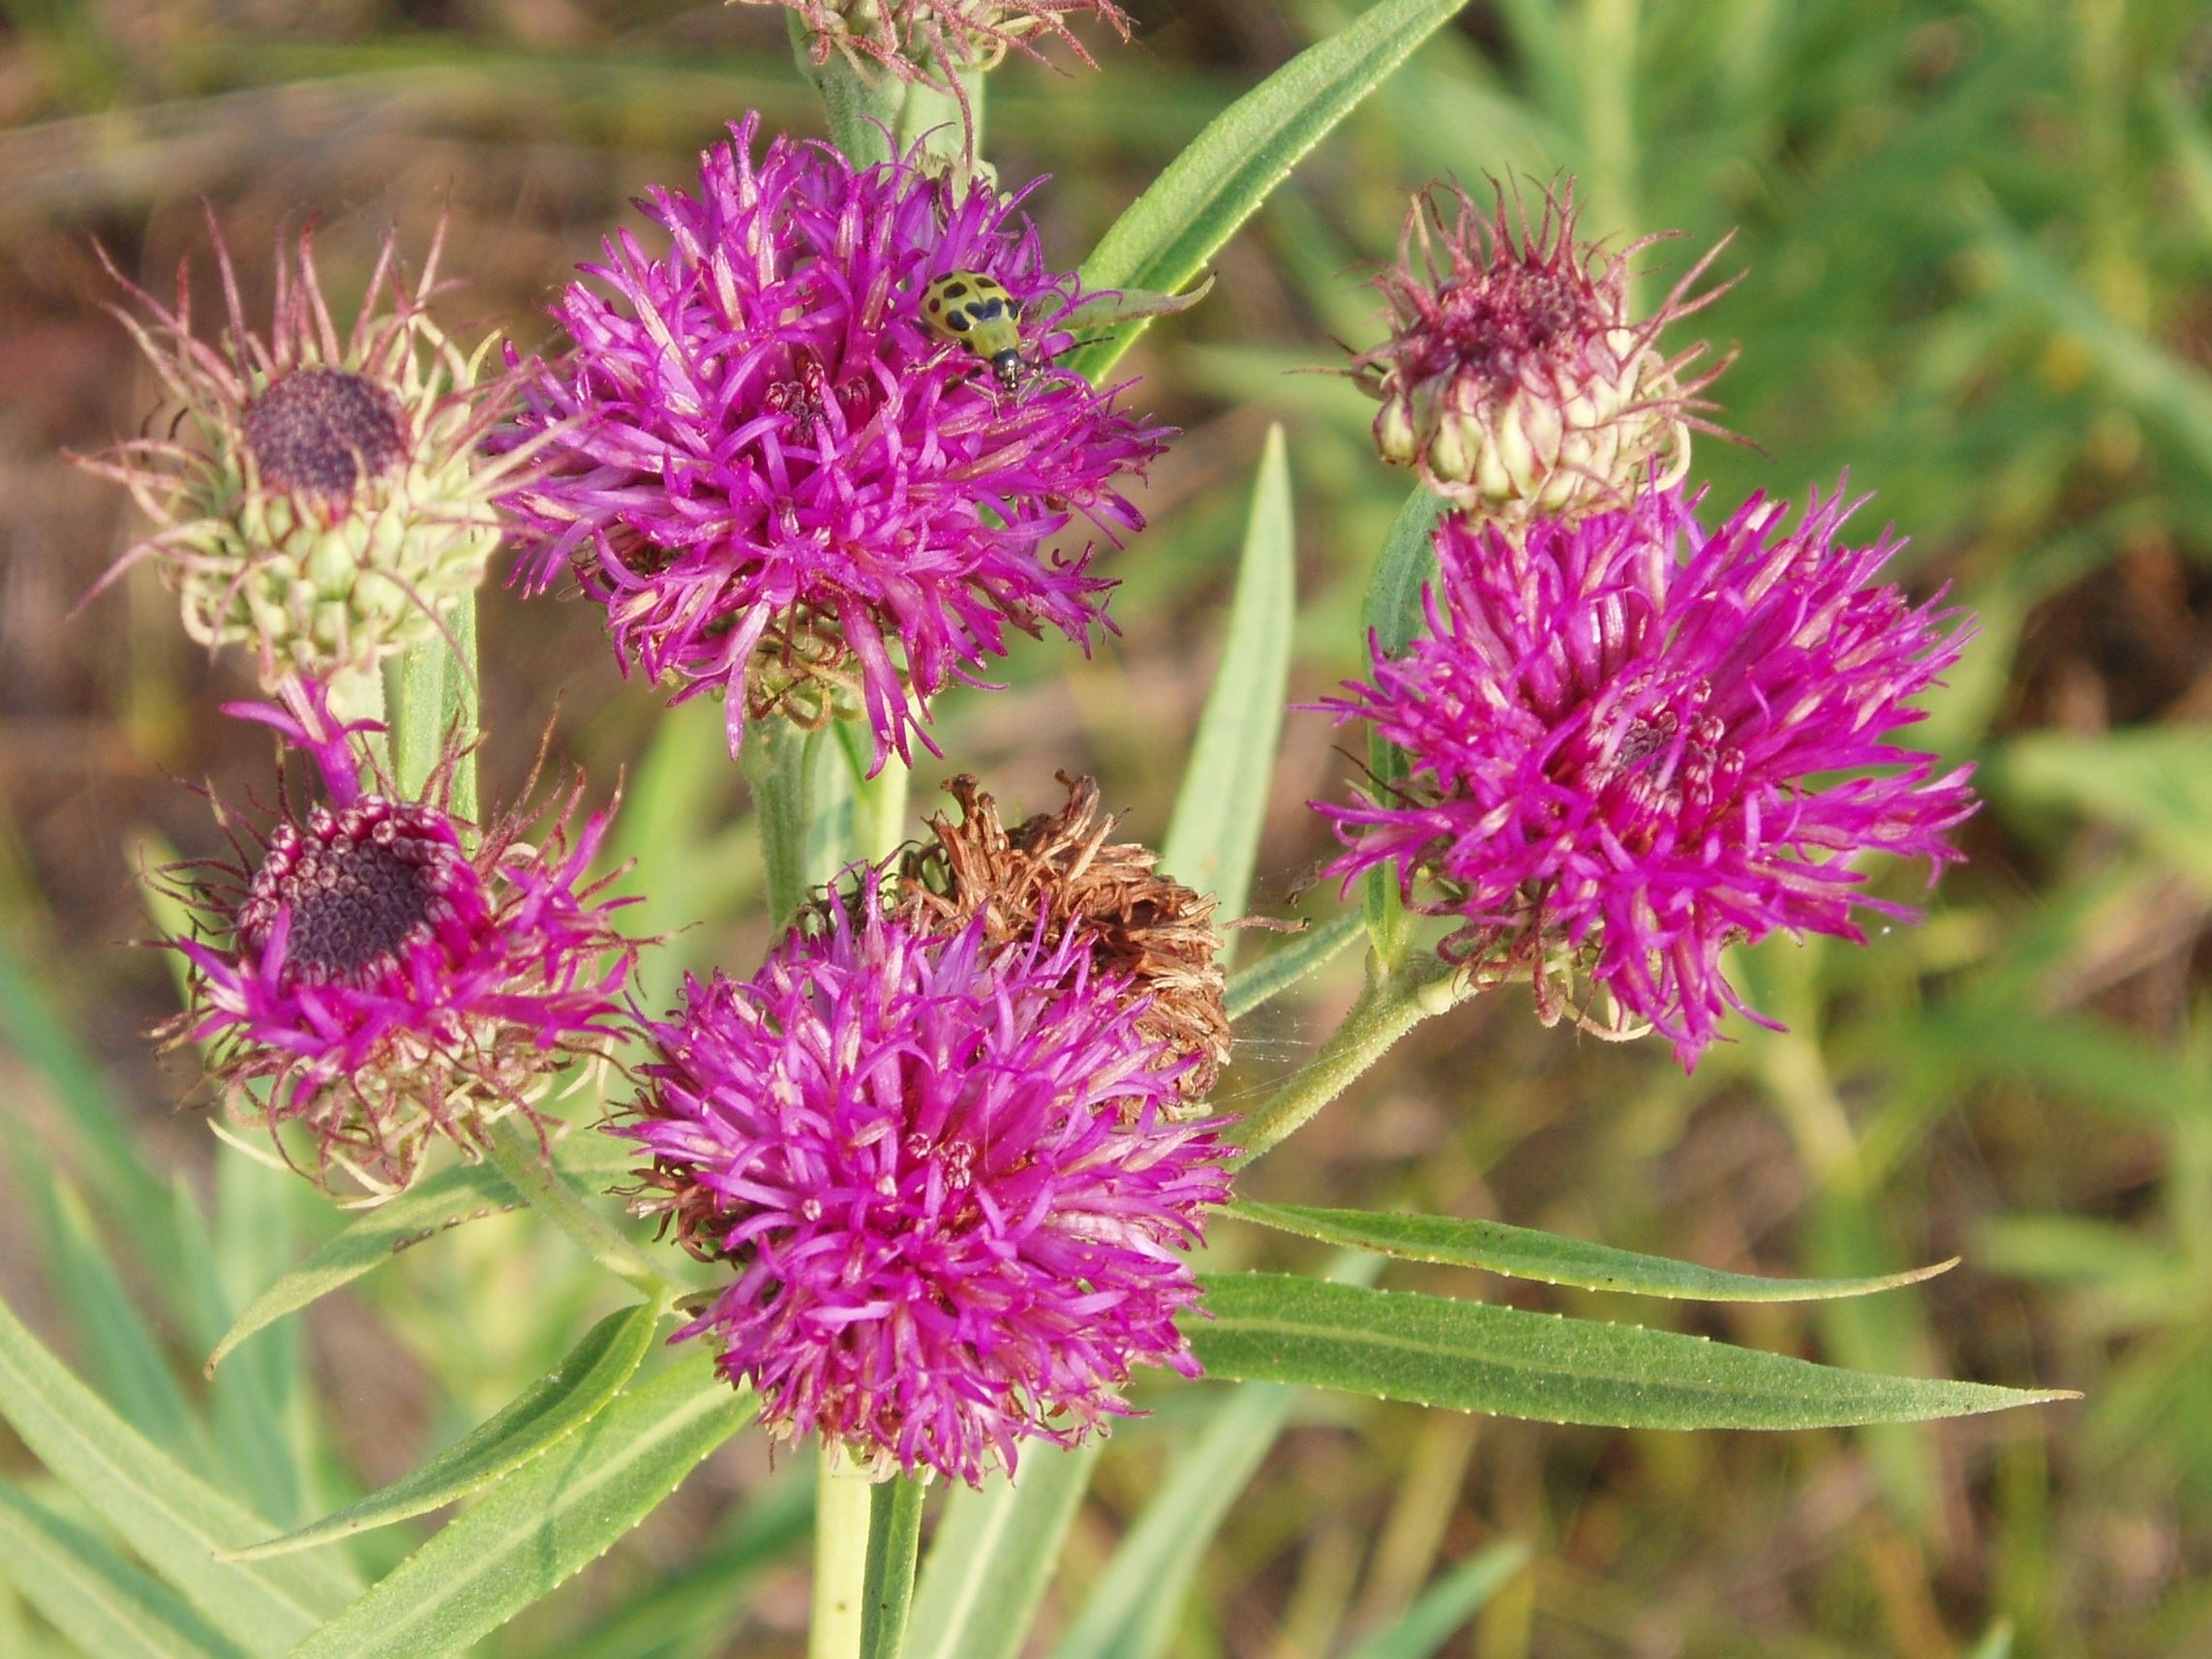 "{""blocks"":[{""key"":""dhhjg"",""text"":""Vernonia baldwinii Western Ironweed -  potted plants email john@easywildflowers.com "",""type"":""unstyled"",""depth"":0,""inlineStyleRanges"":[],""entityRanges"":[],""data"":{}}],""entityMap"":{}}"